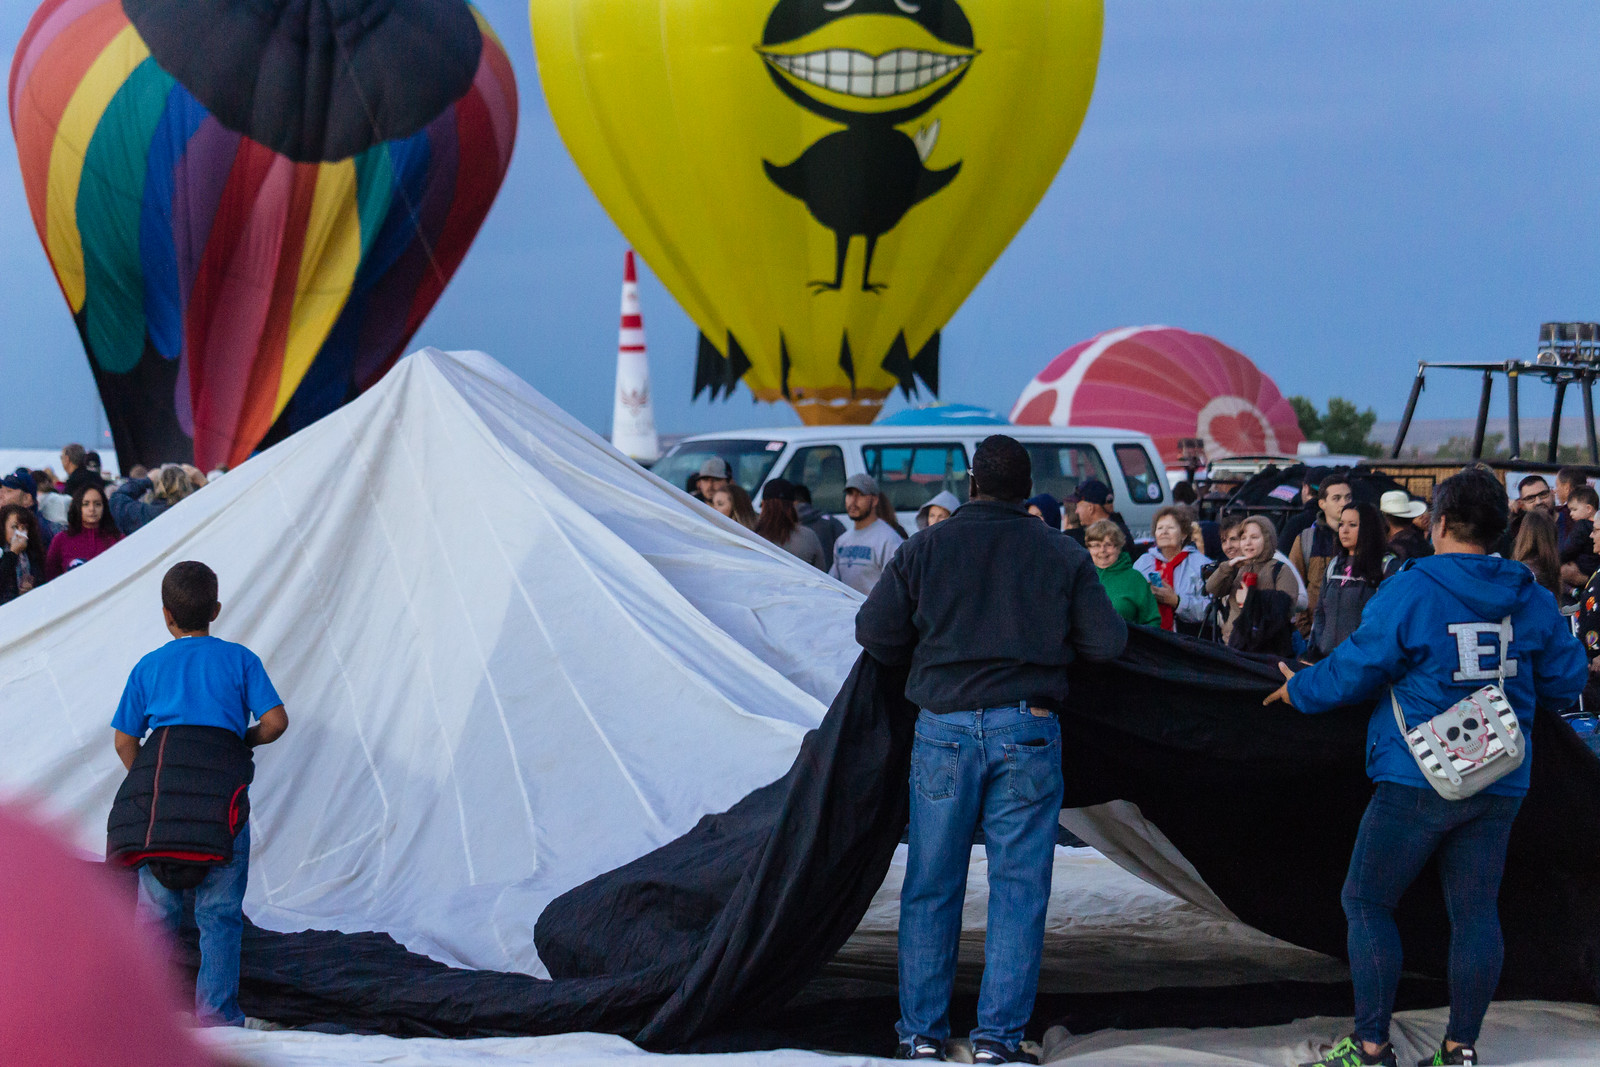 A family helps unroll the fabric of a balloon envelope at the Albuquerque International Balloon Fiesta